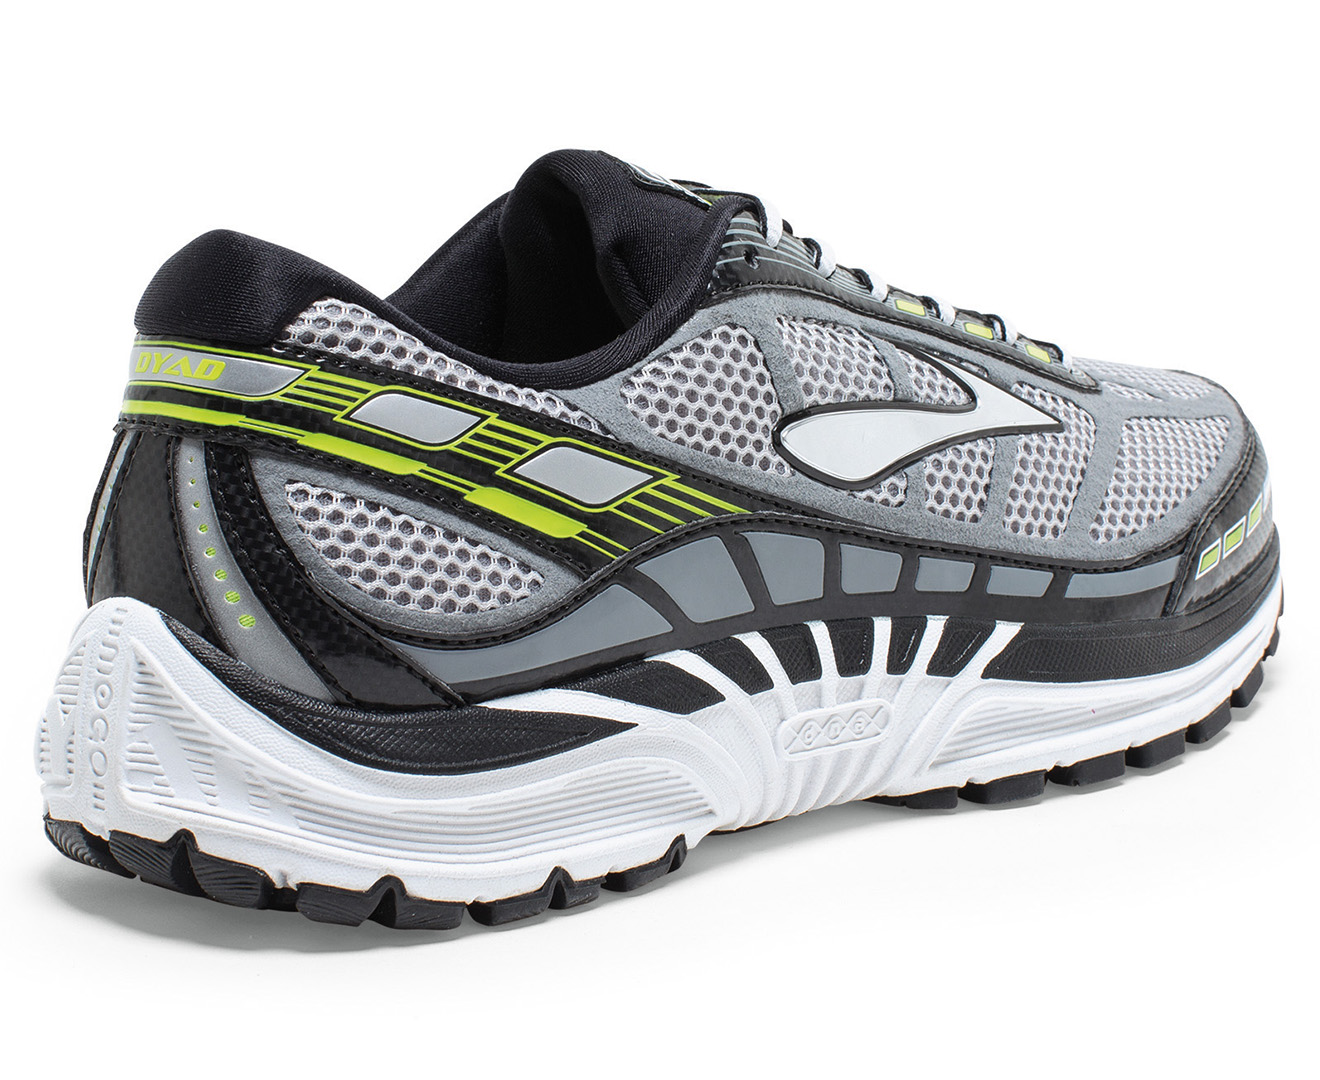 Orthotic Friendly Running Shoes